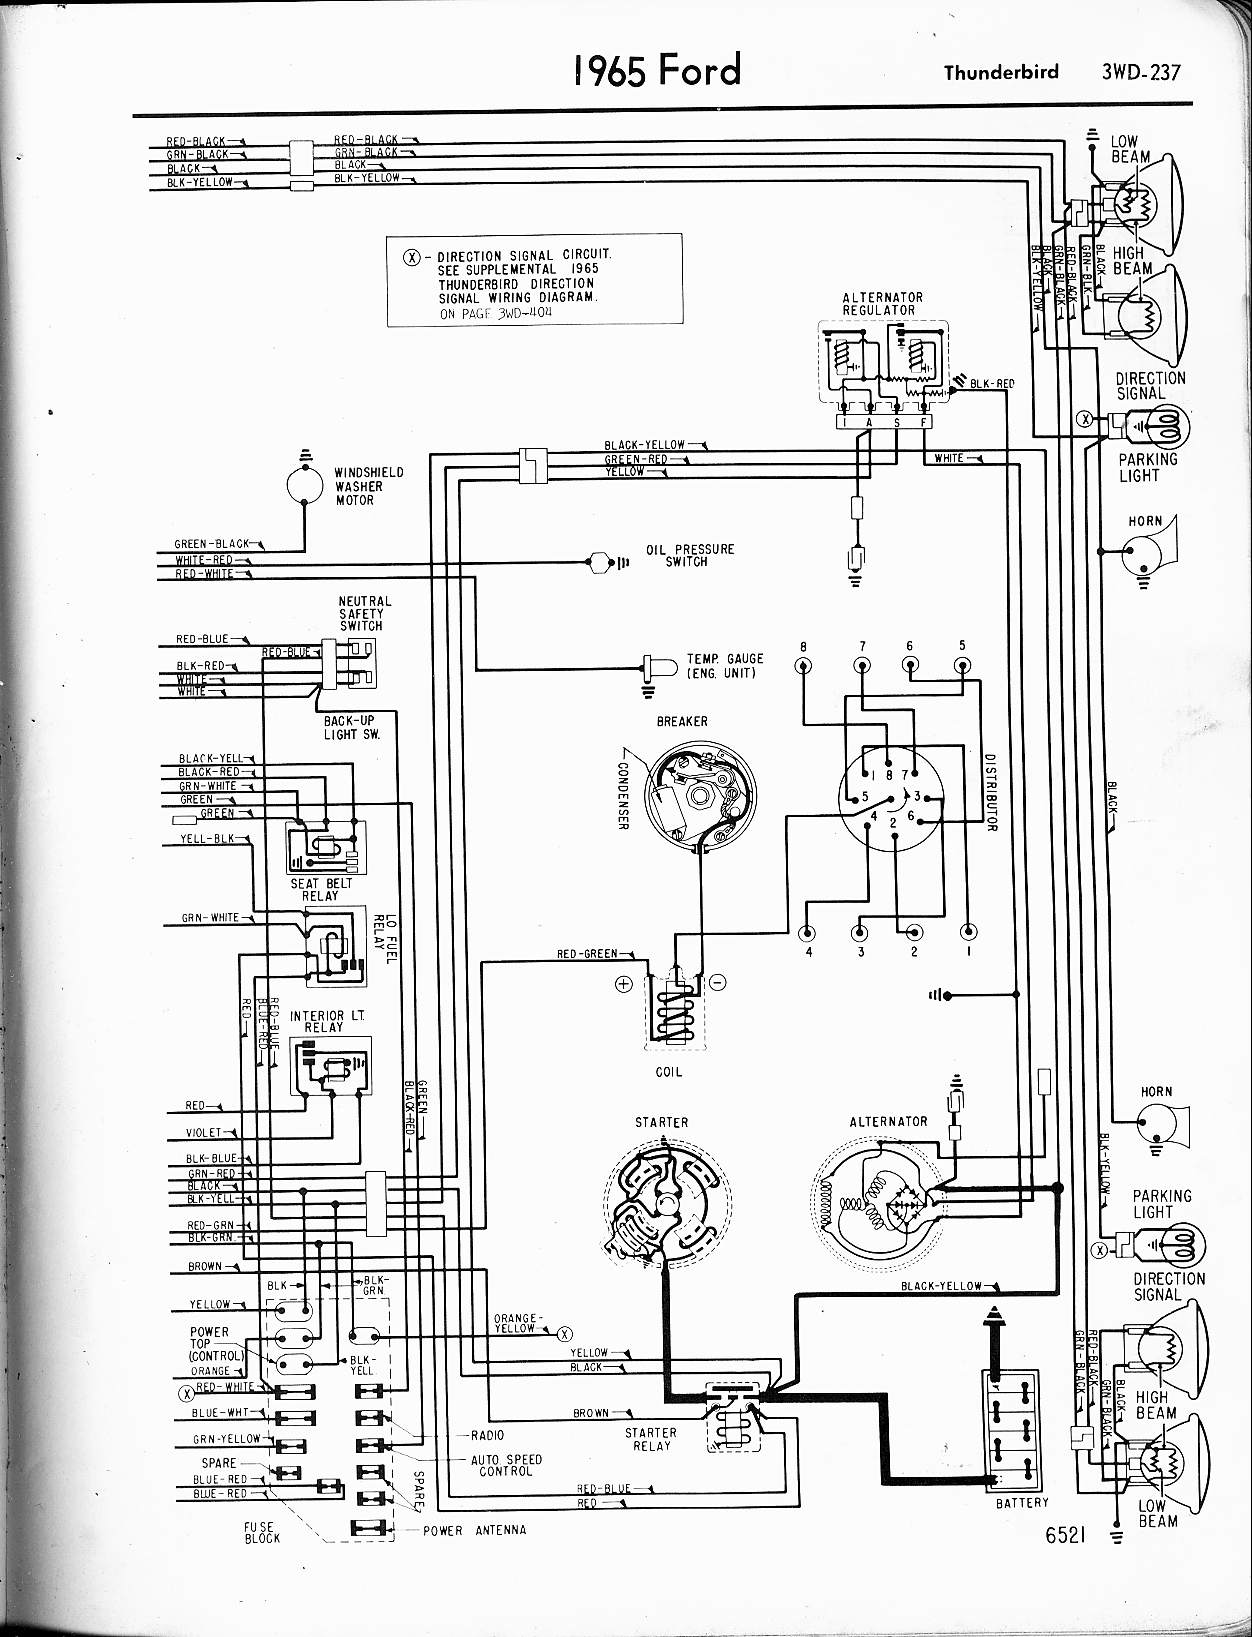 Truck Wiring Examples Data Diagram Resistor For Chevy 1951 Ballast Library Ignition Lock 57 65 Ford